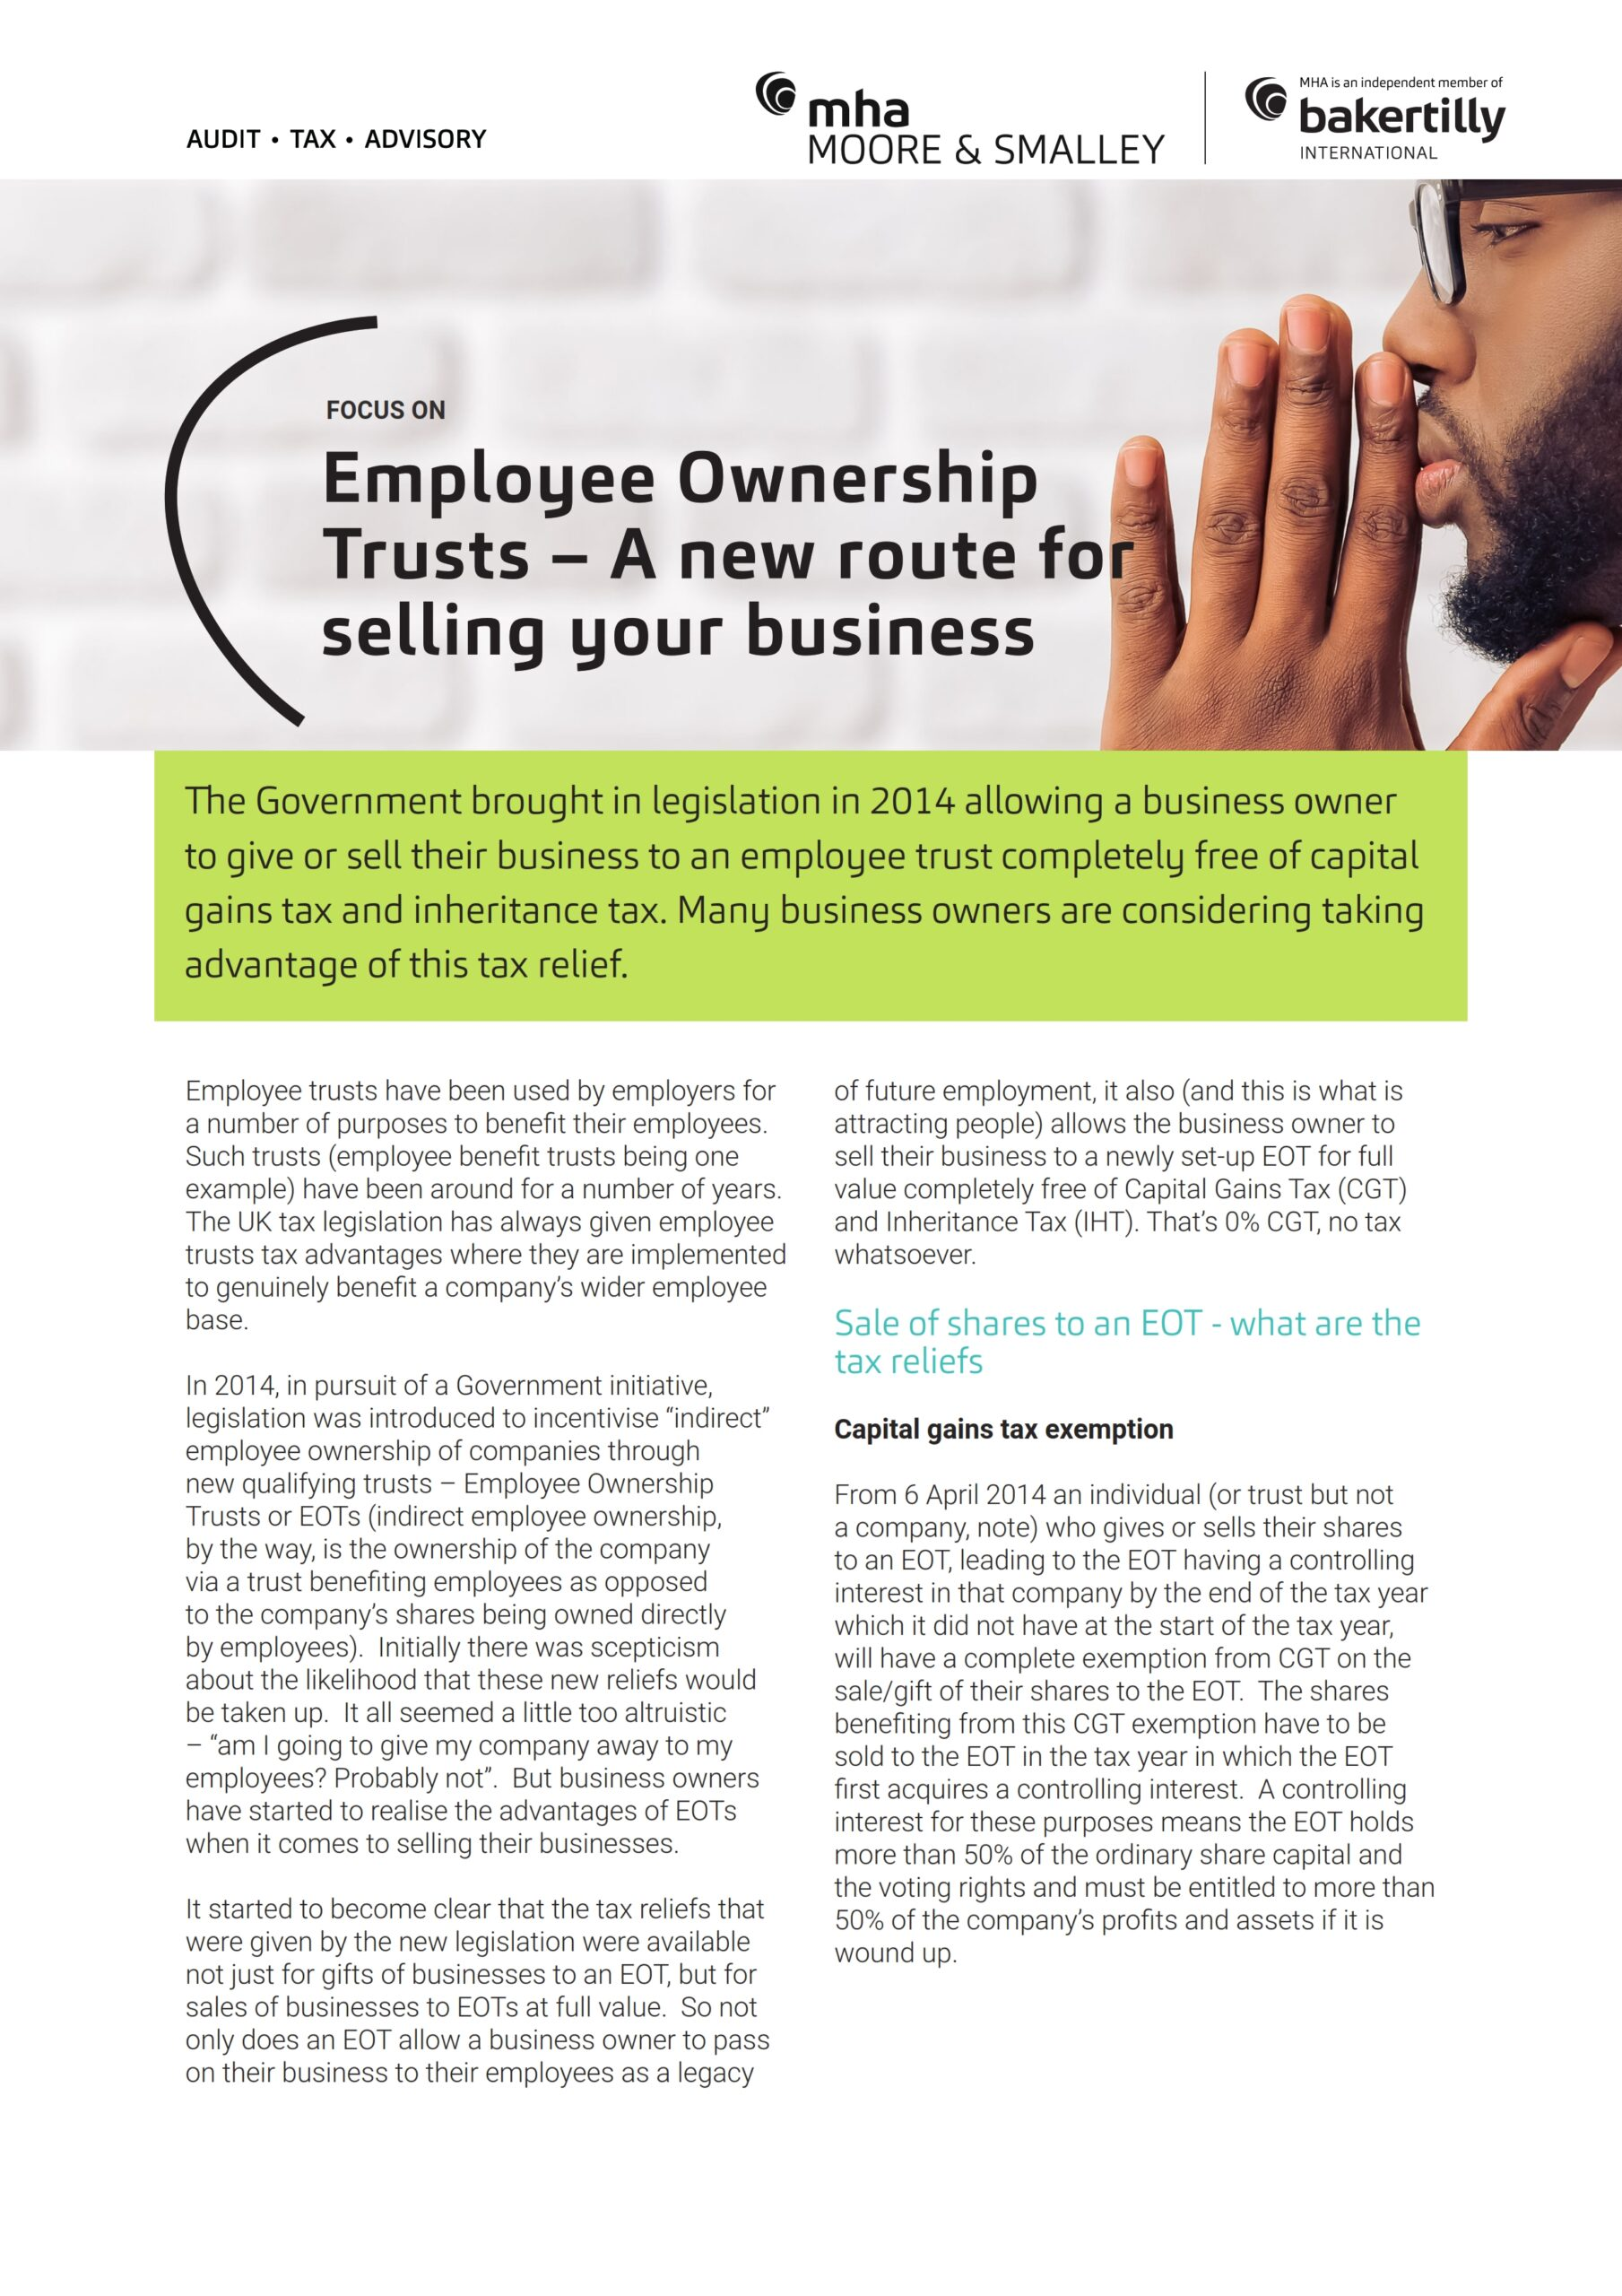 Employee Ownership Trusts – A new route for selling your business